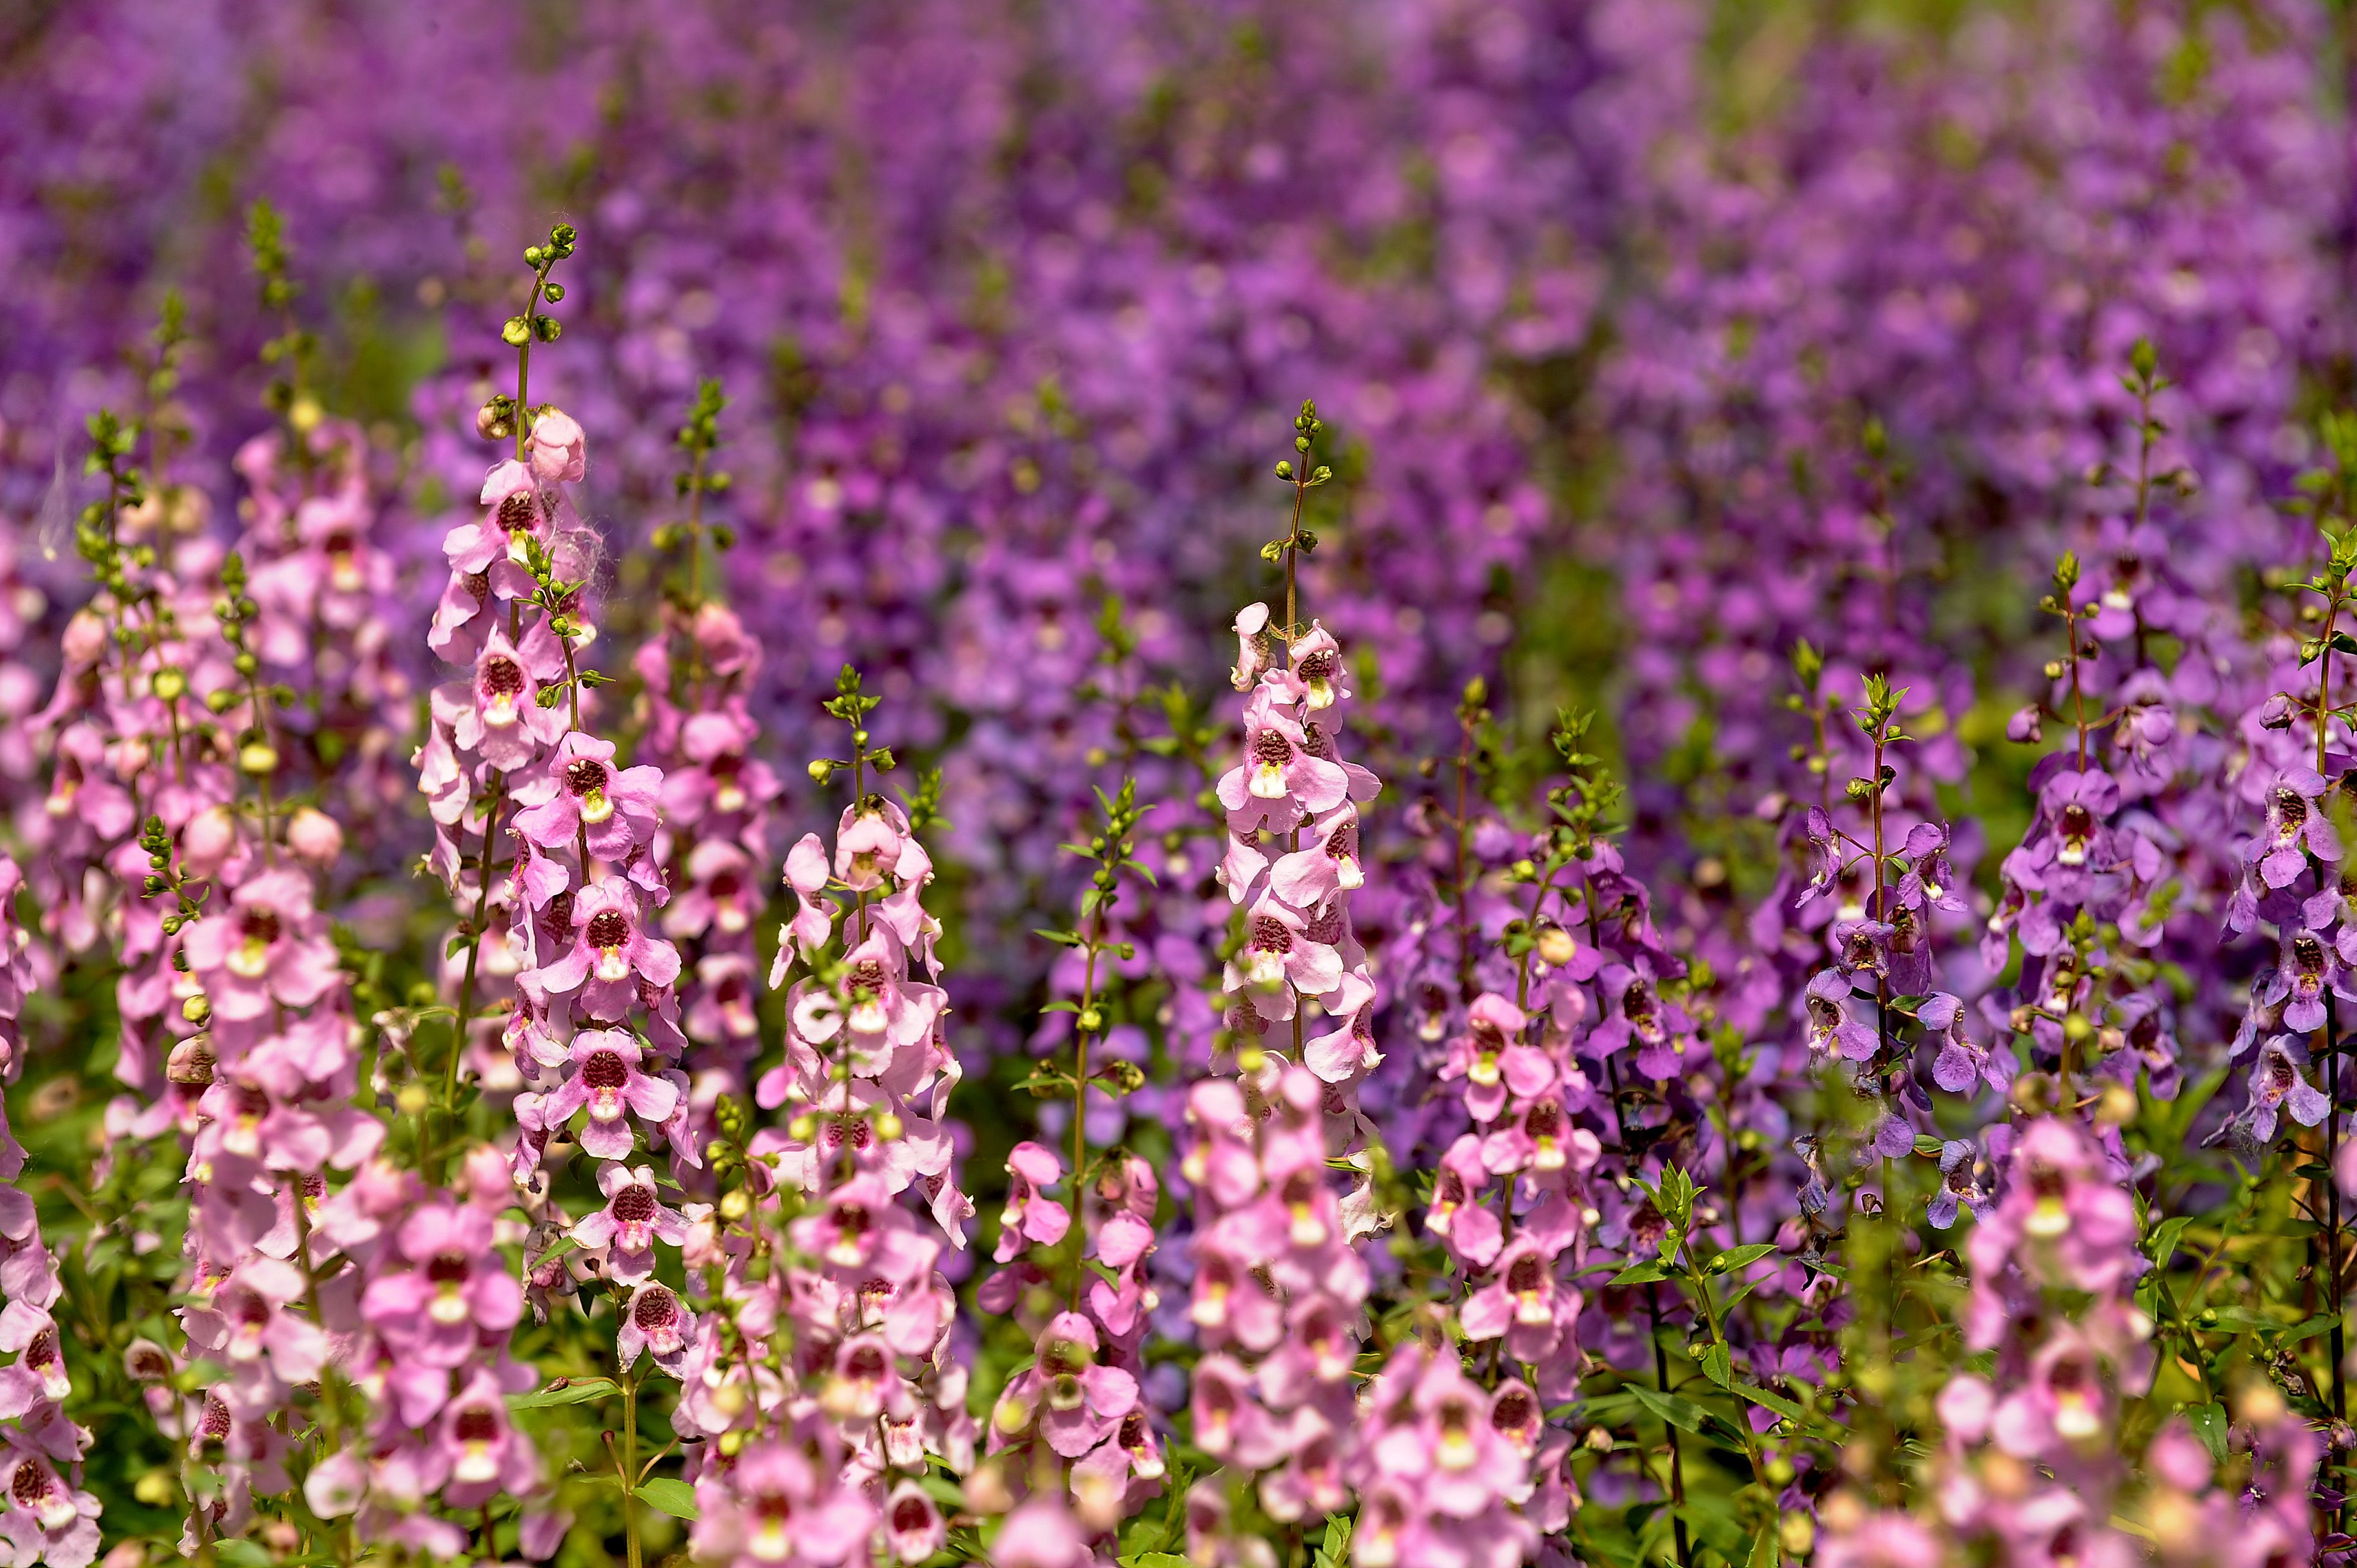 20 Drought-Resistant Plants for a Beautiful Yard Even in Dry Climates